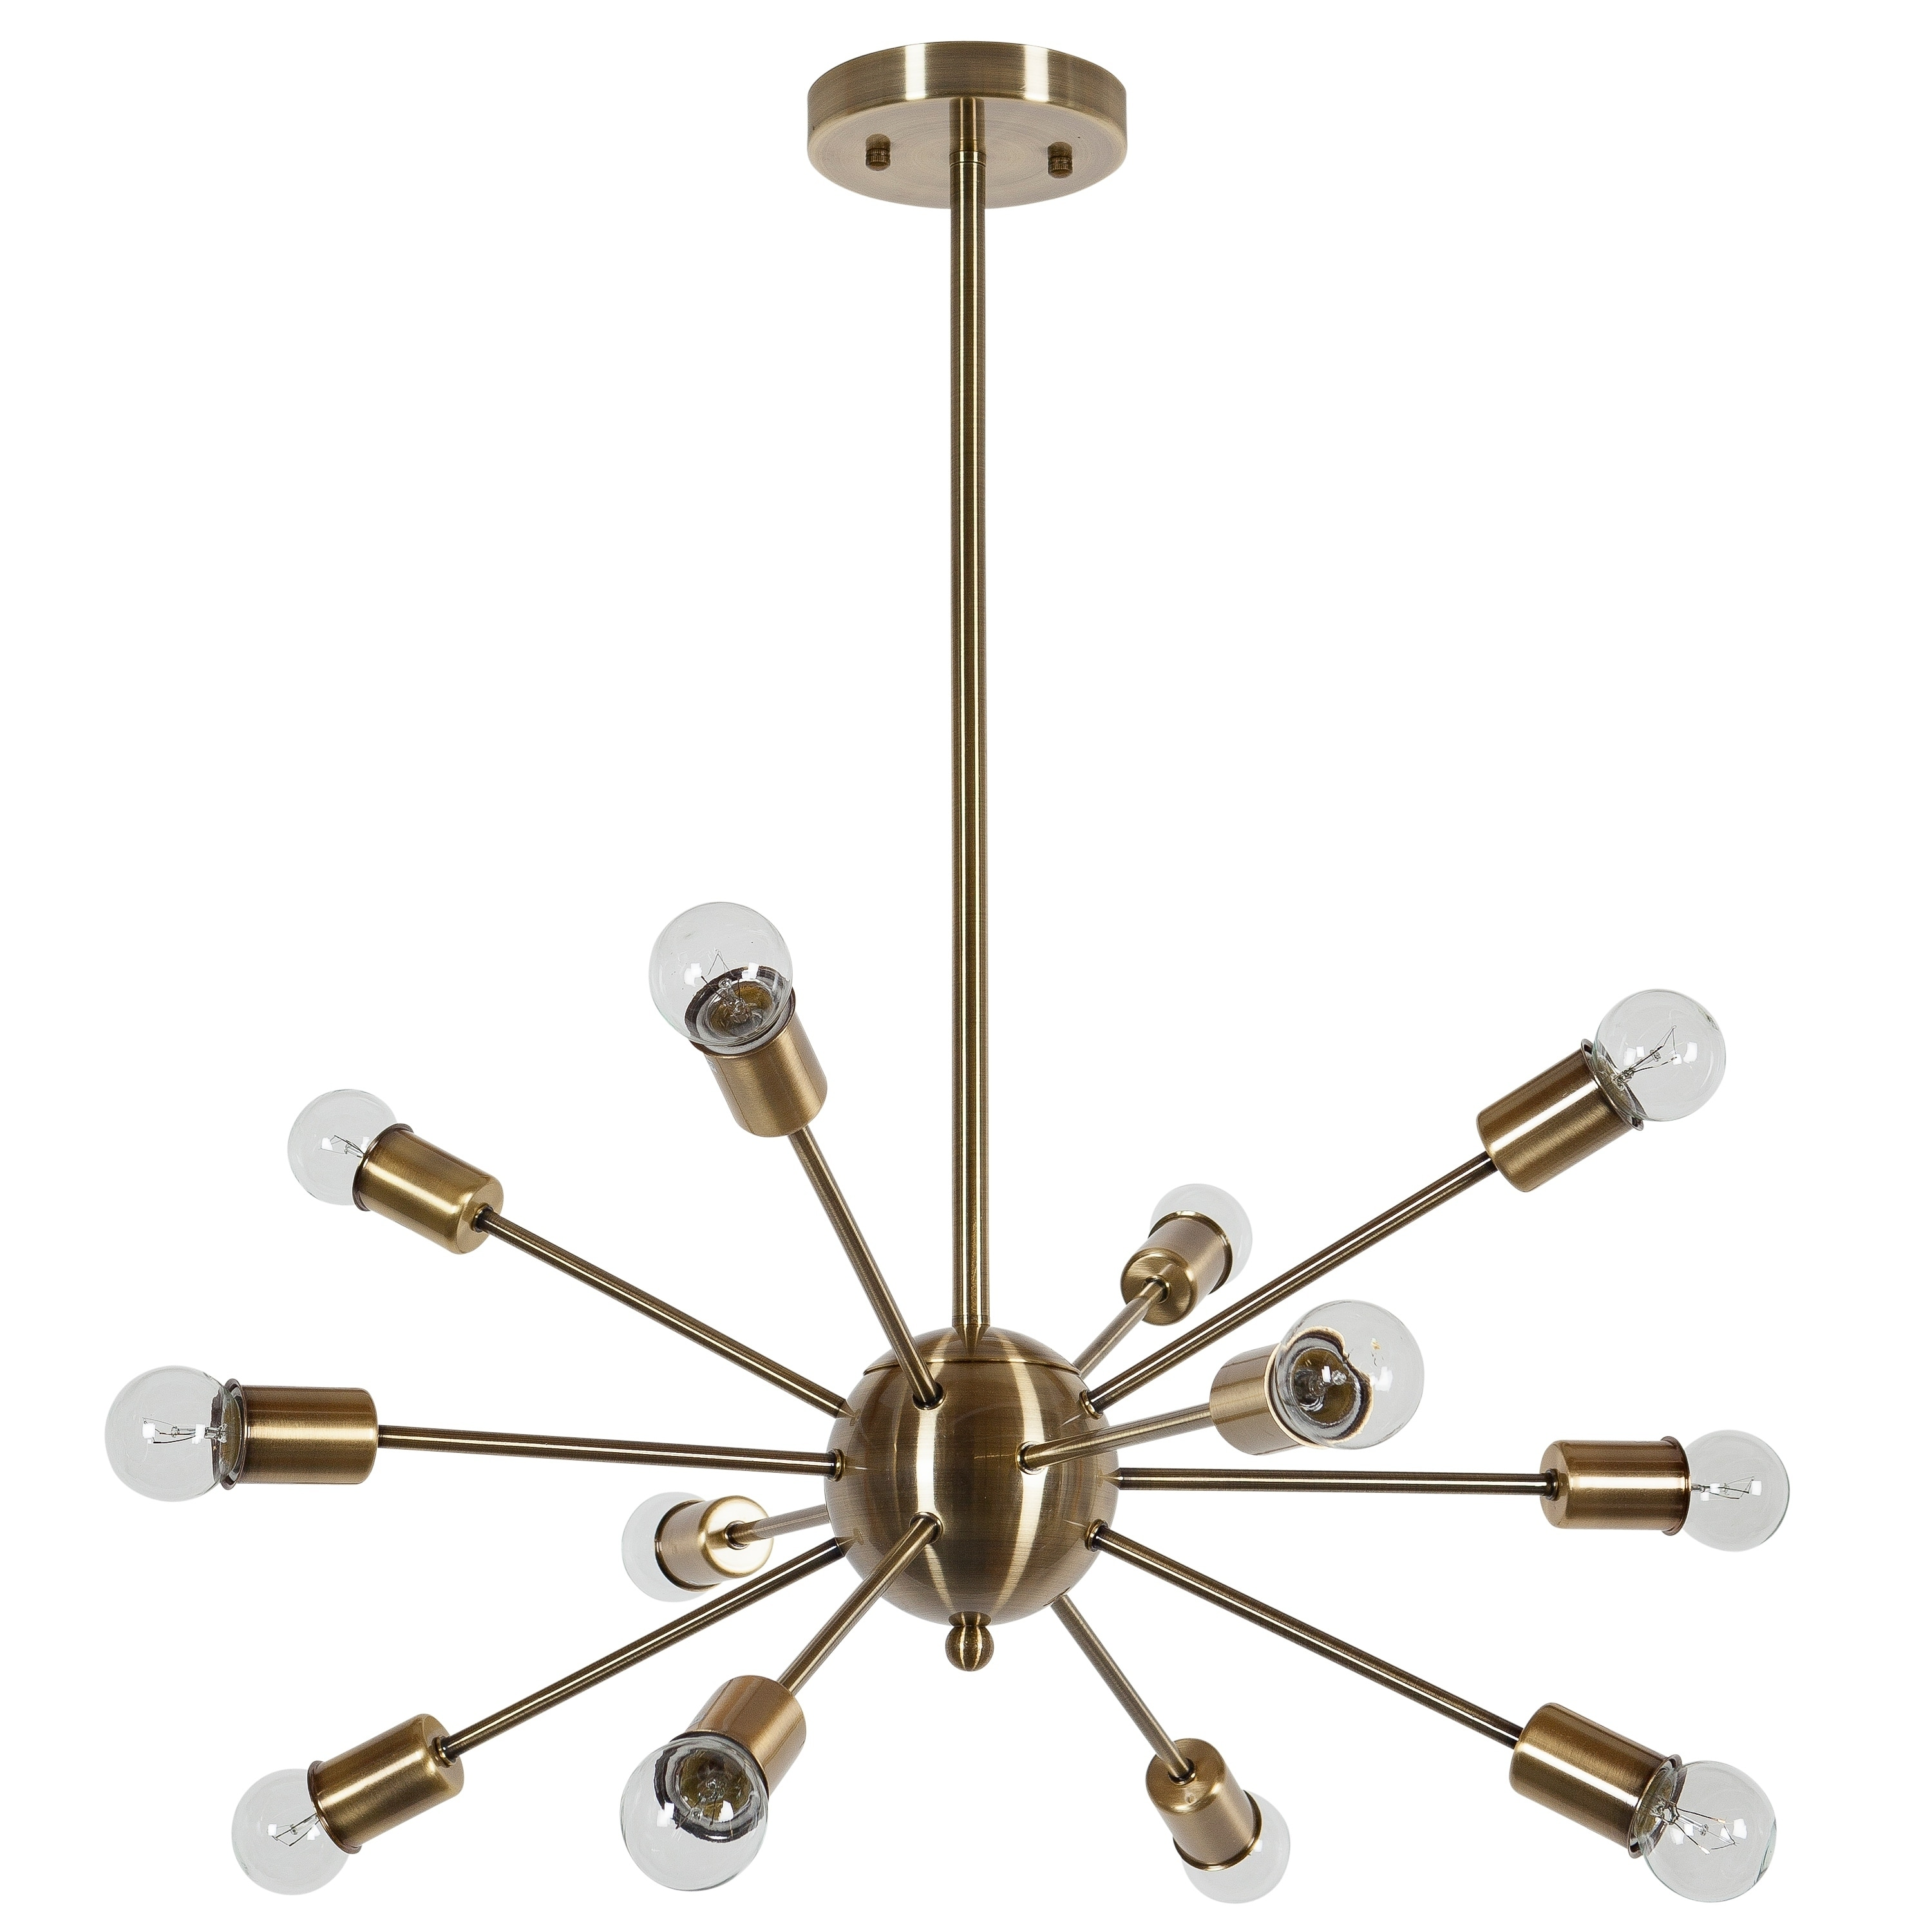 furniture org f or billiard chandeliers sale urchin extra large brass at for lights snooker kitchen id island chandelier lighting poker pendant lamp